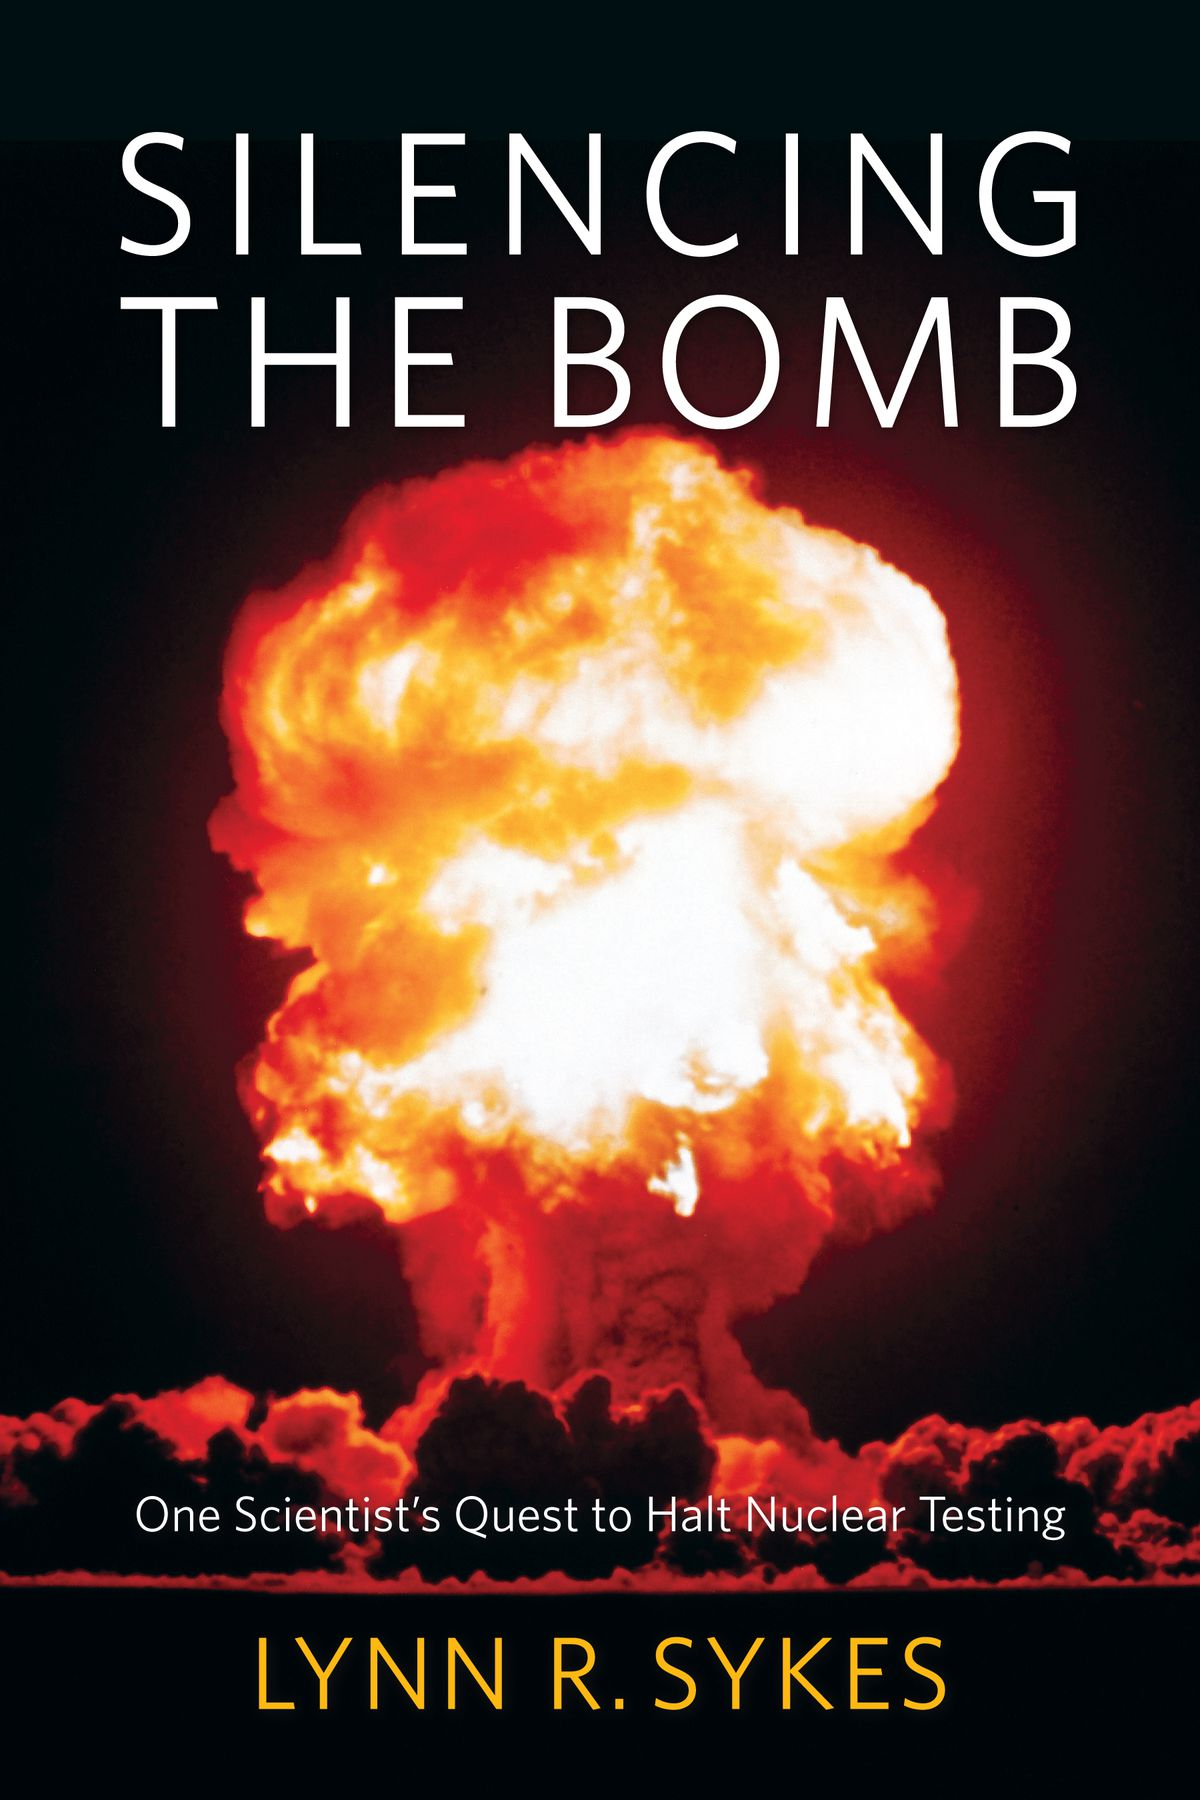 The cover of Lynn Sykes' book, Silencing the Bomb: One Scientist's Quest to Halt Nuclear Testing.